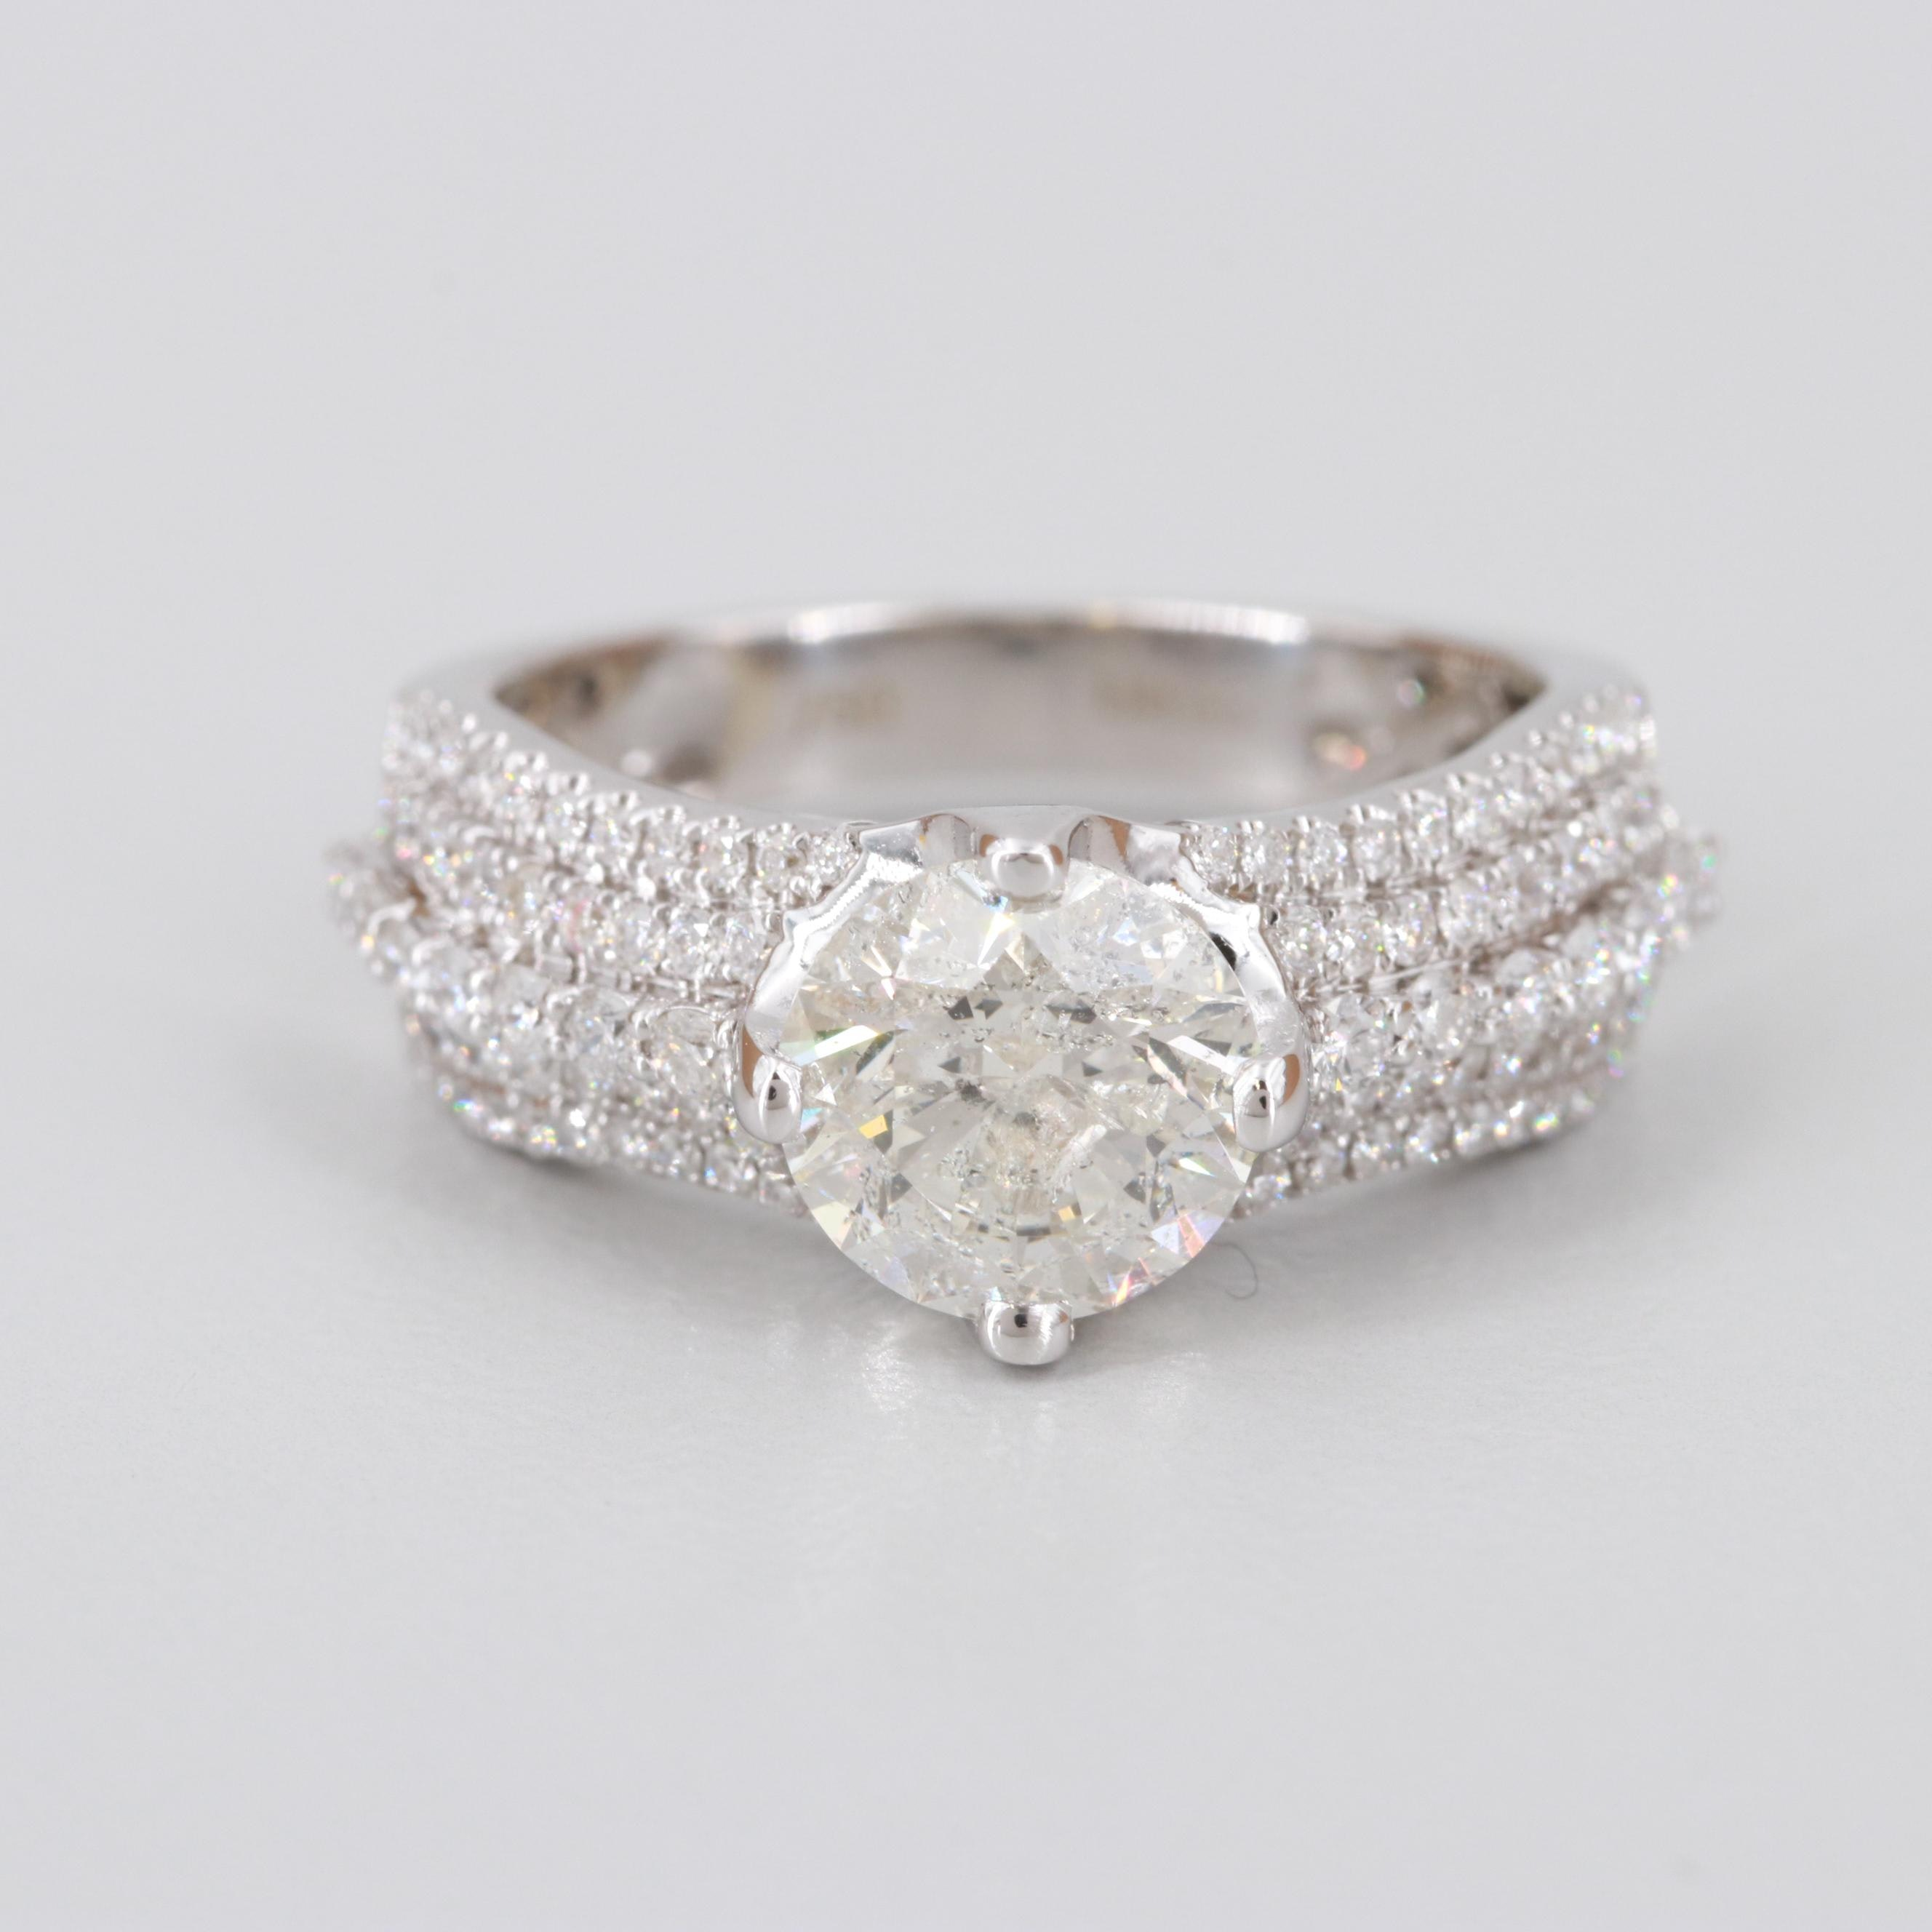 18K White Gold 2.49 CTW Diamond Ring